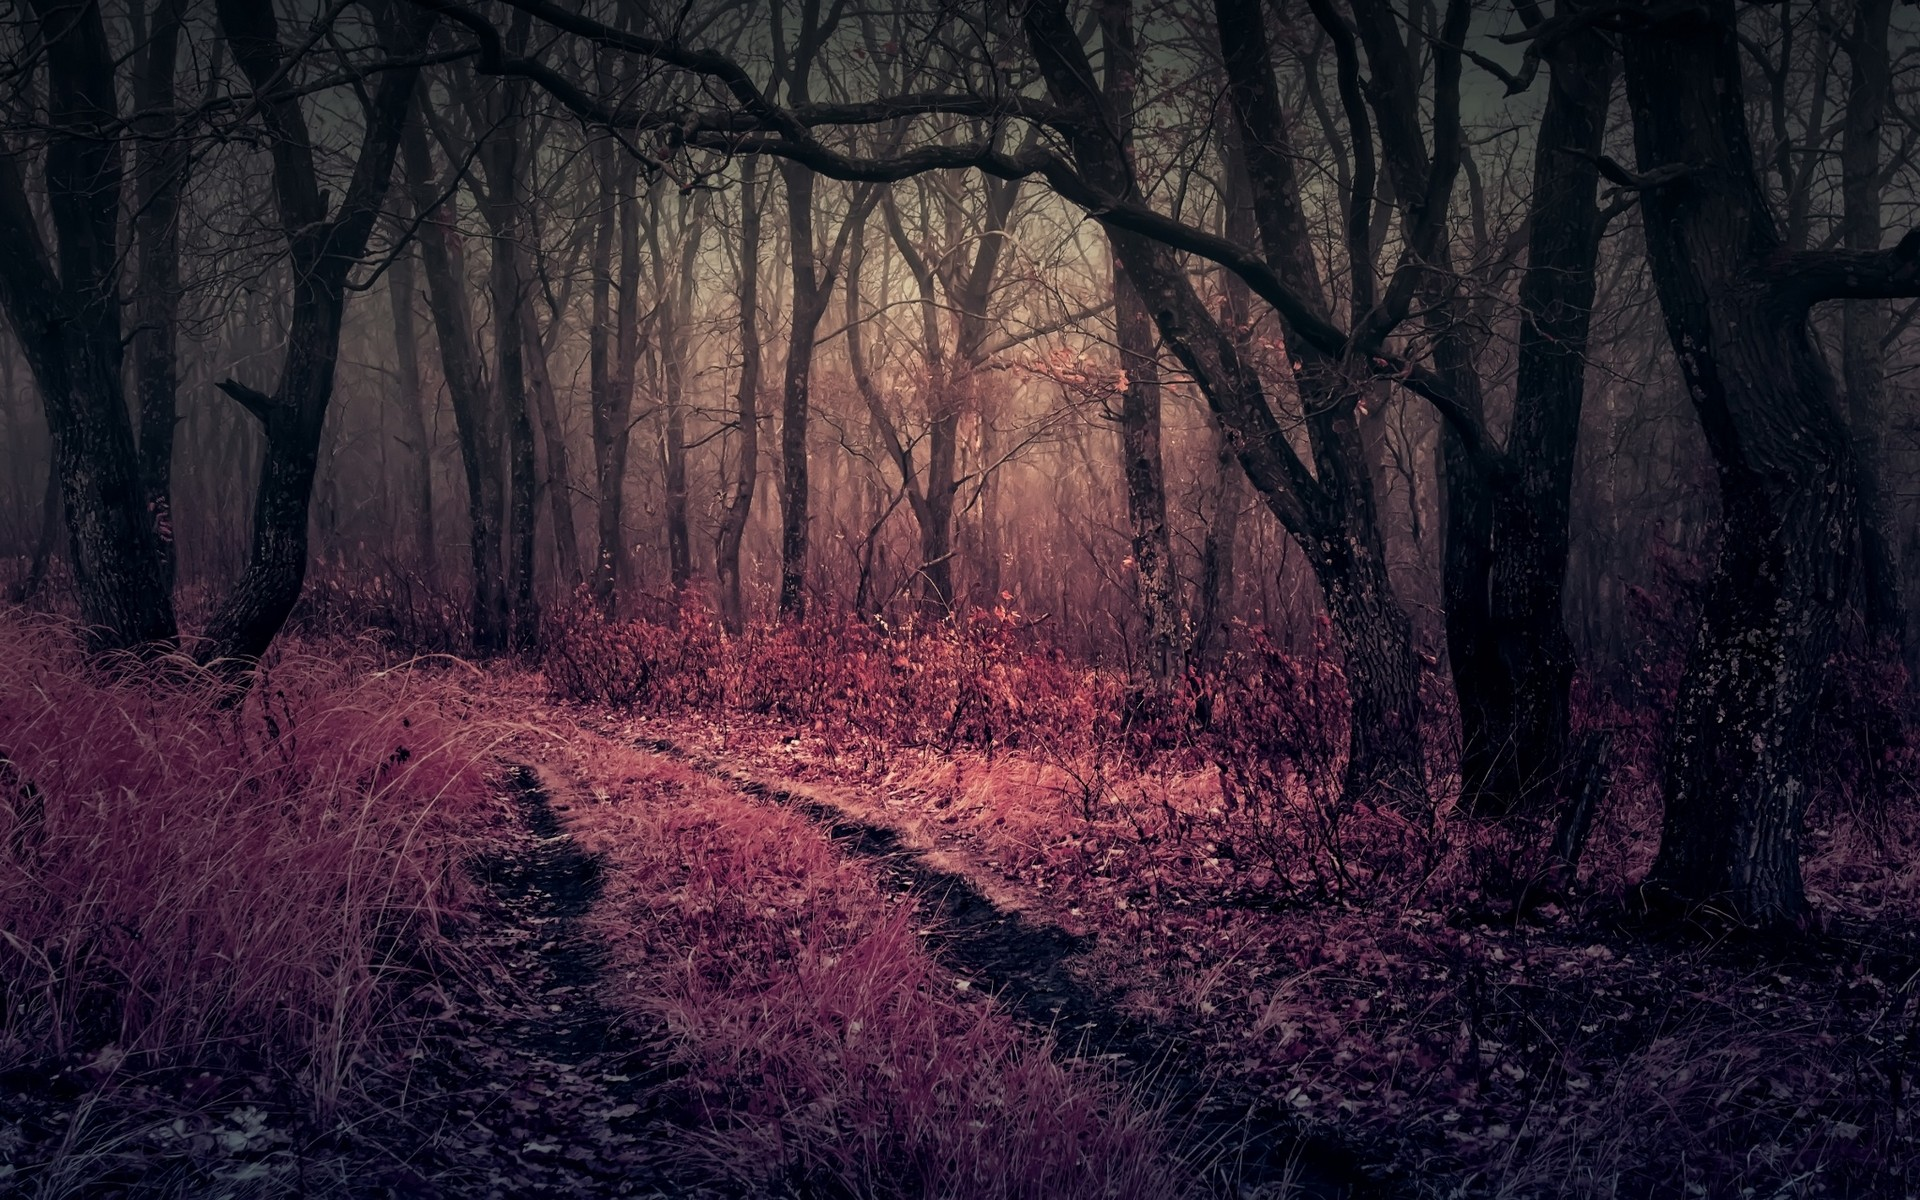 Gloomy Fall Wallpaper Purple Heaven In Forest Hd Nature 4k Wallpapers Images